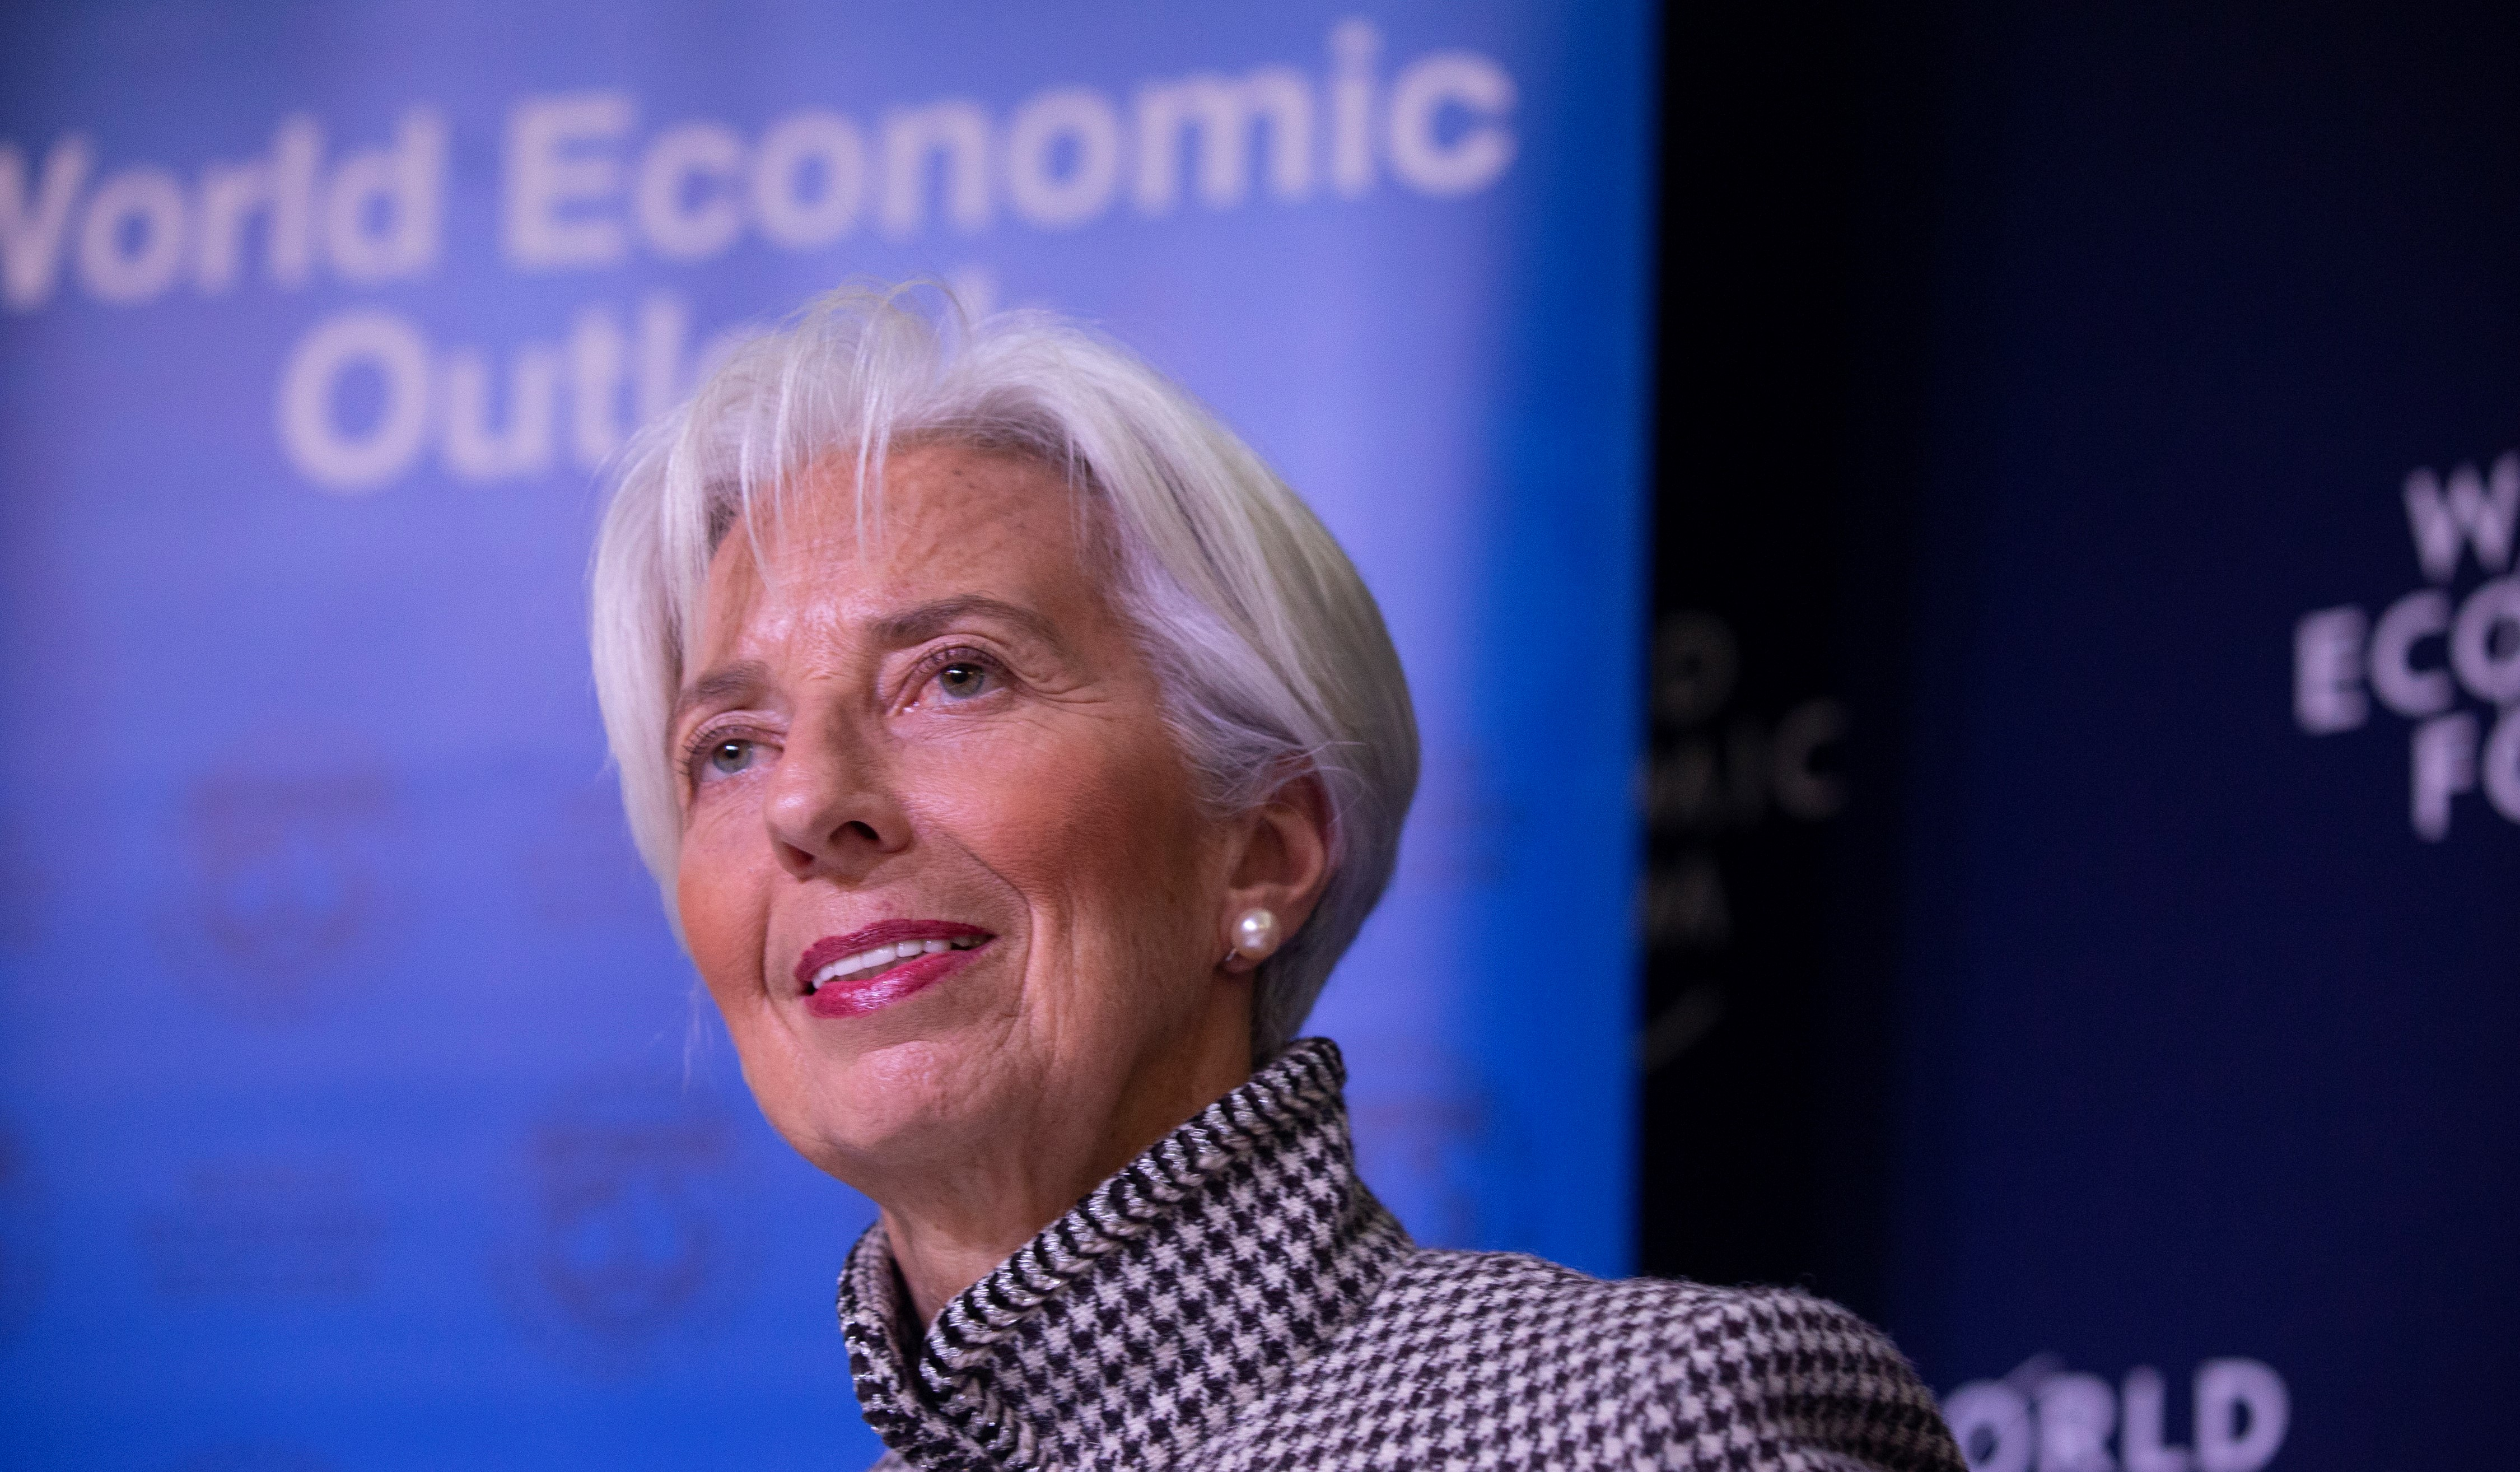 UPDATE 3-Lagarde ECB pick triggers euro-zone share rally as investors chase yield